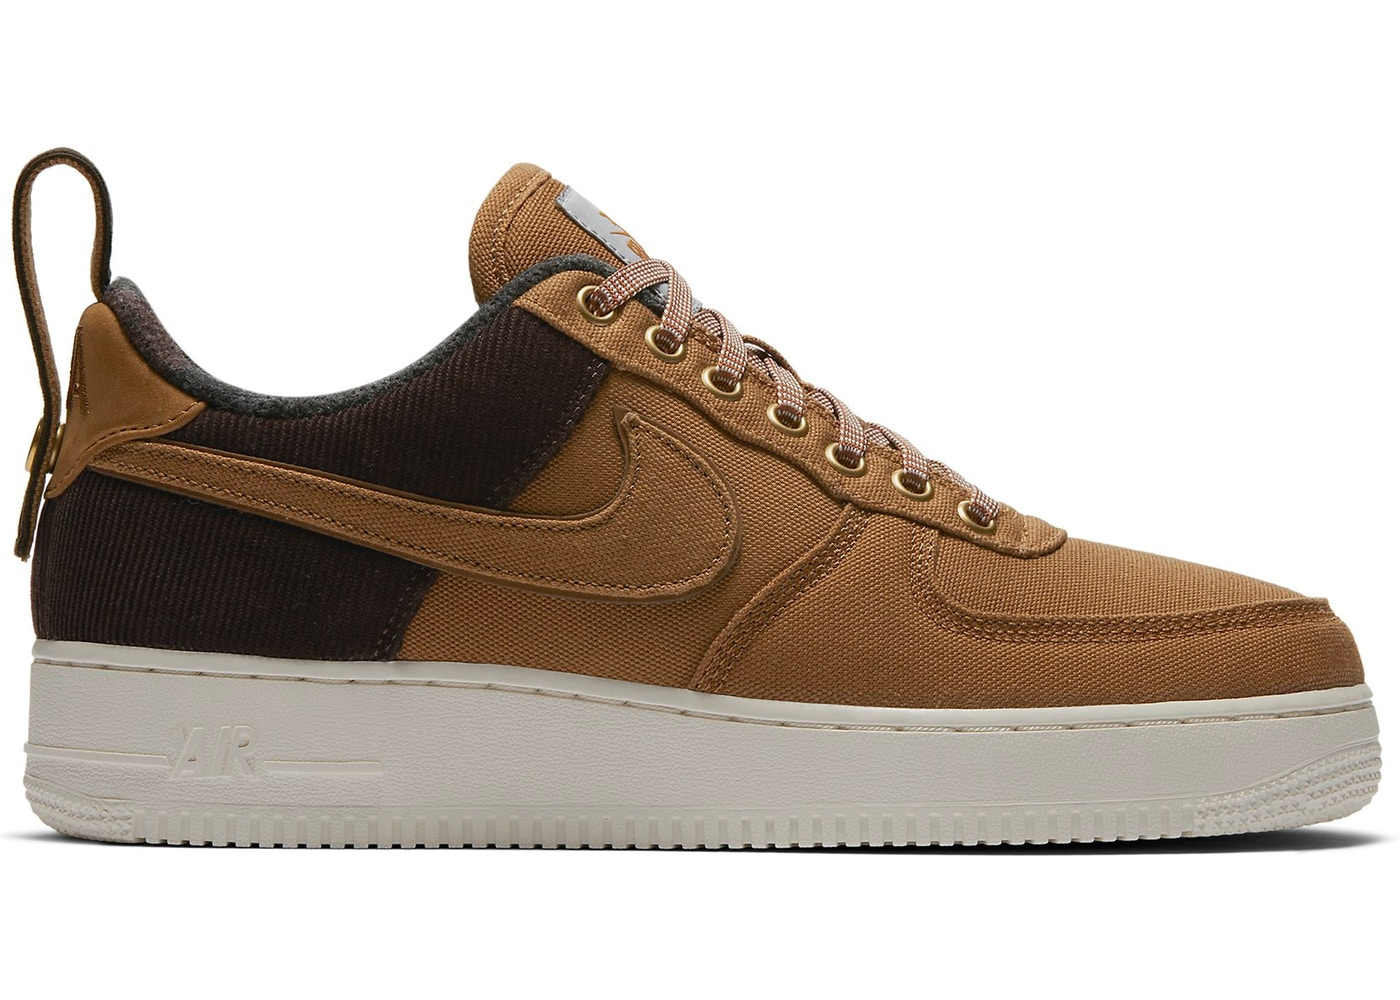 hot sales san francisco discount shop Nike Air Force 1 Low Carhartt WIP Ale Brown - AV4113-200